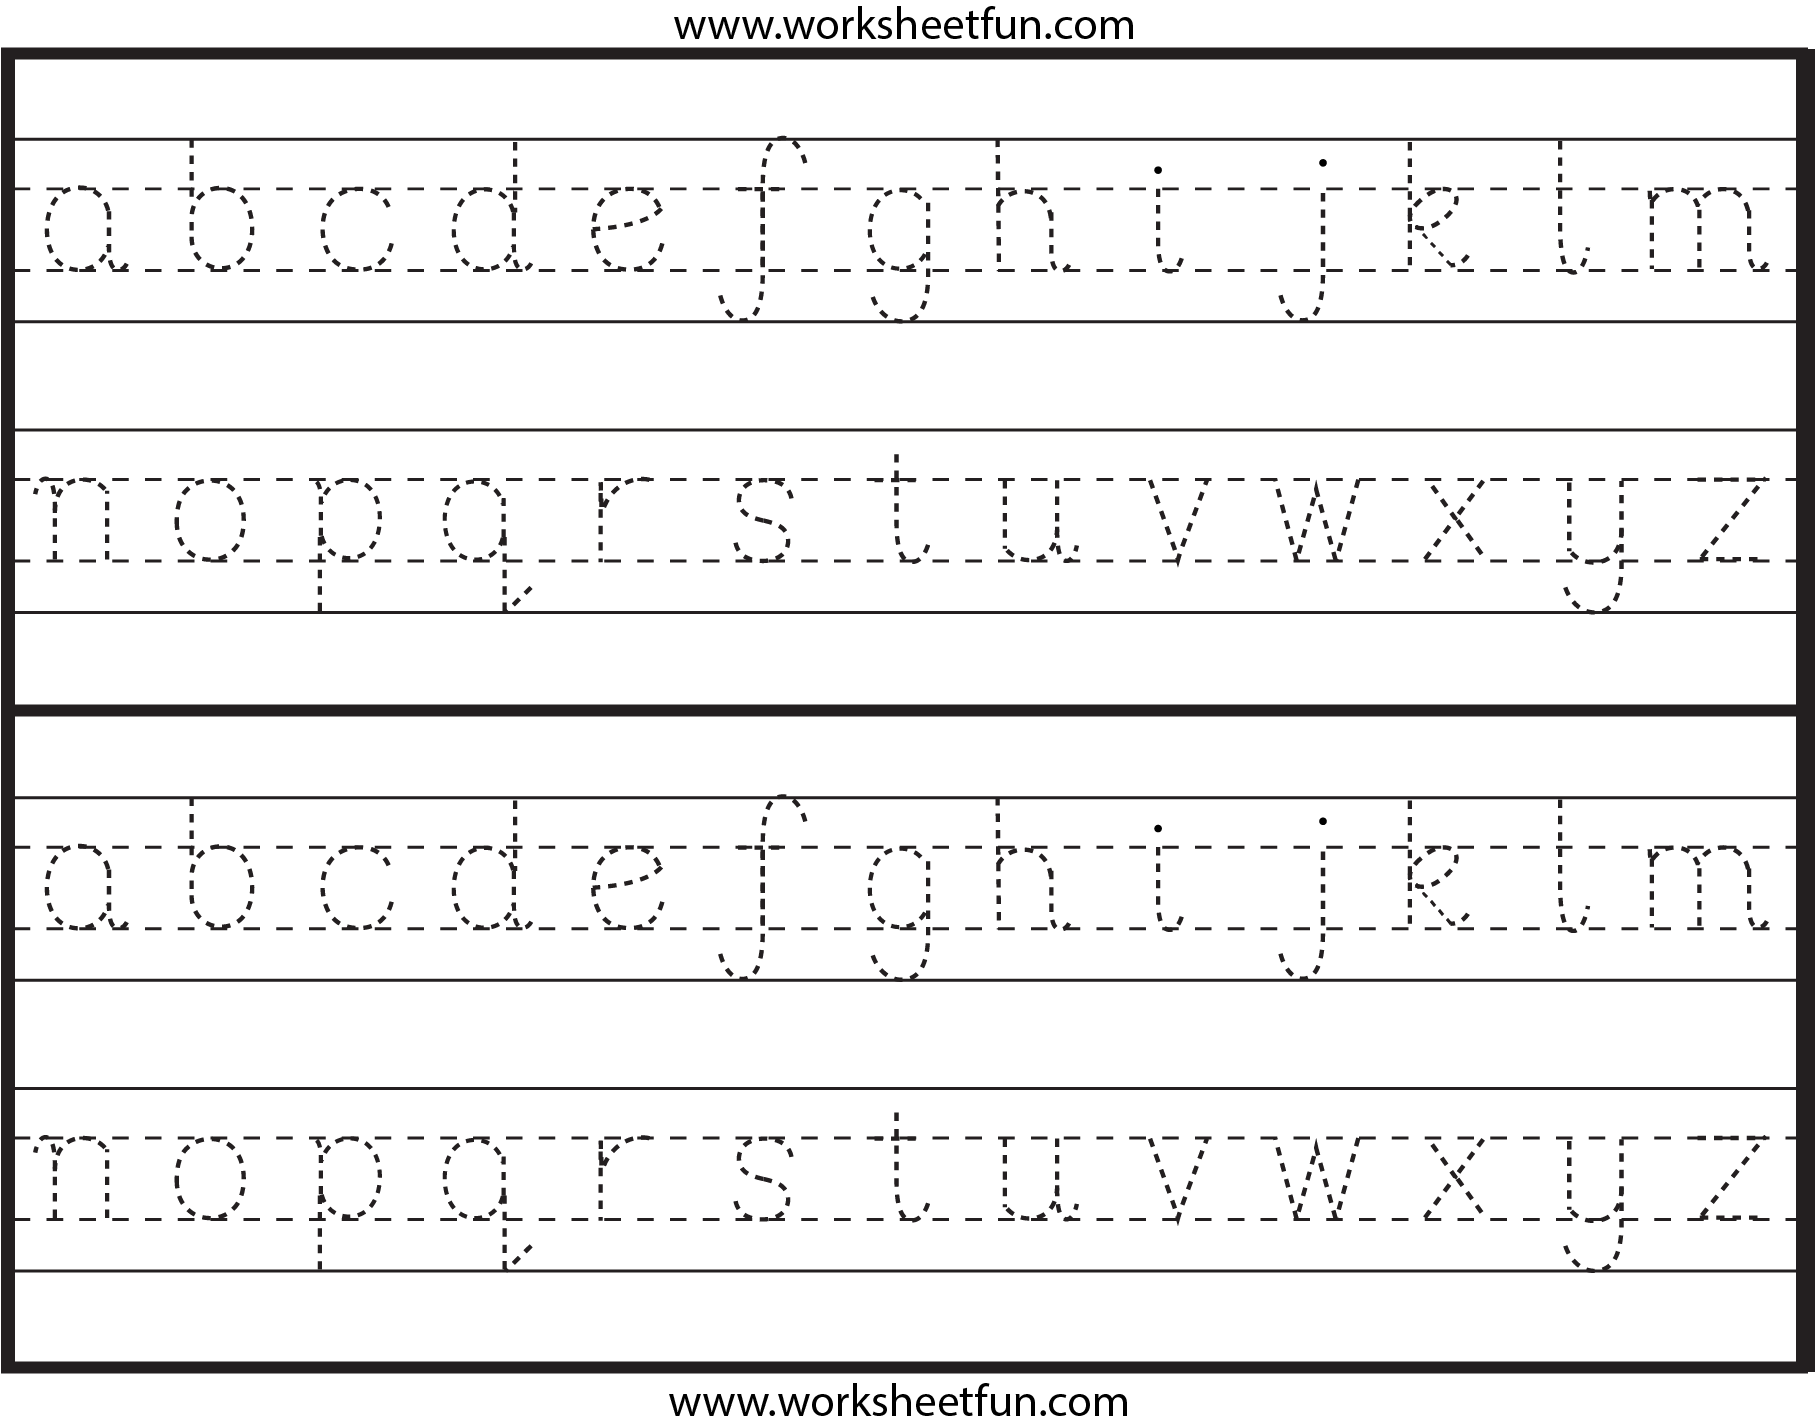 Worksheets Trace Alphabet of trace the alphabet worksheet sharebrowse collection sharebrowse